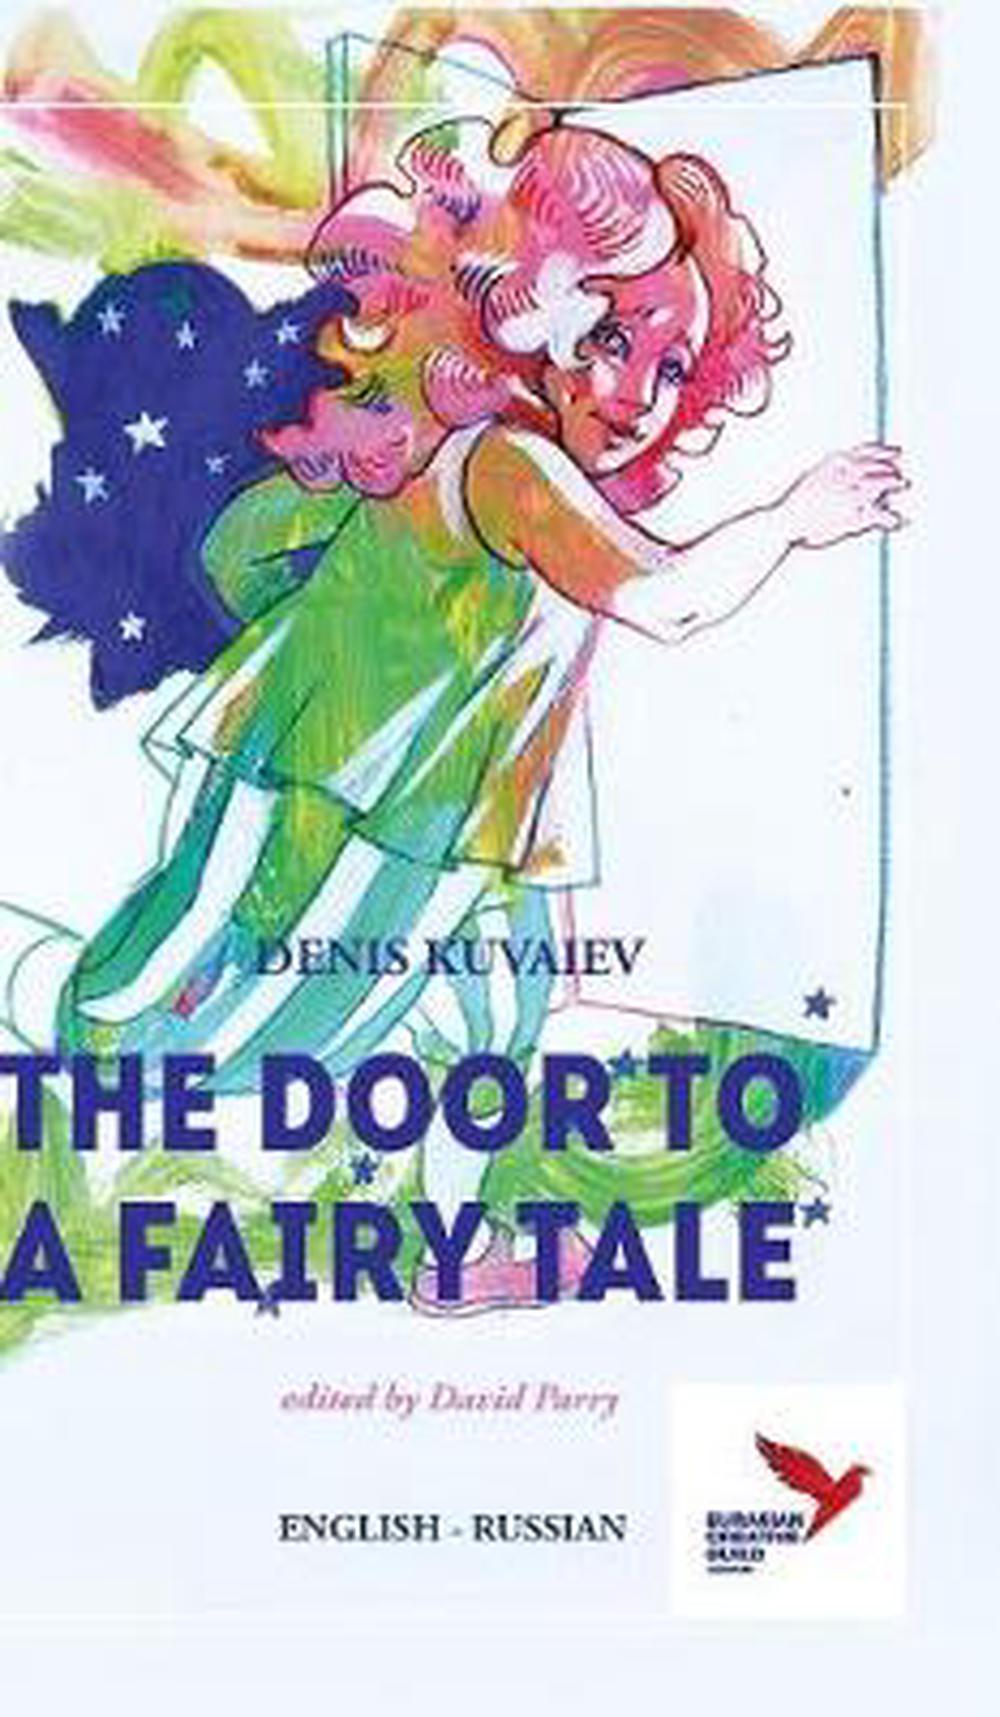 The-Door-to-a-Fairy-Tale-by-Denis-Kuvaiev-English-Hardcover-Book-Free-Shipping